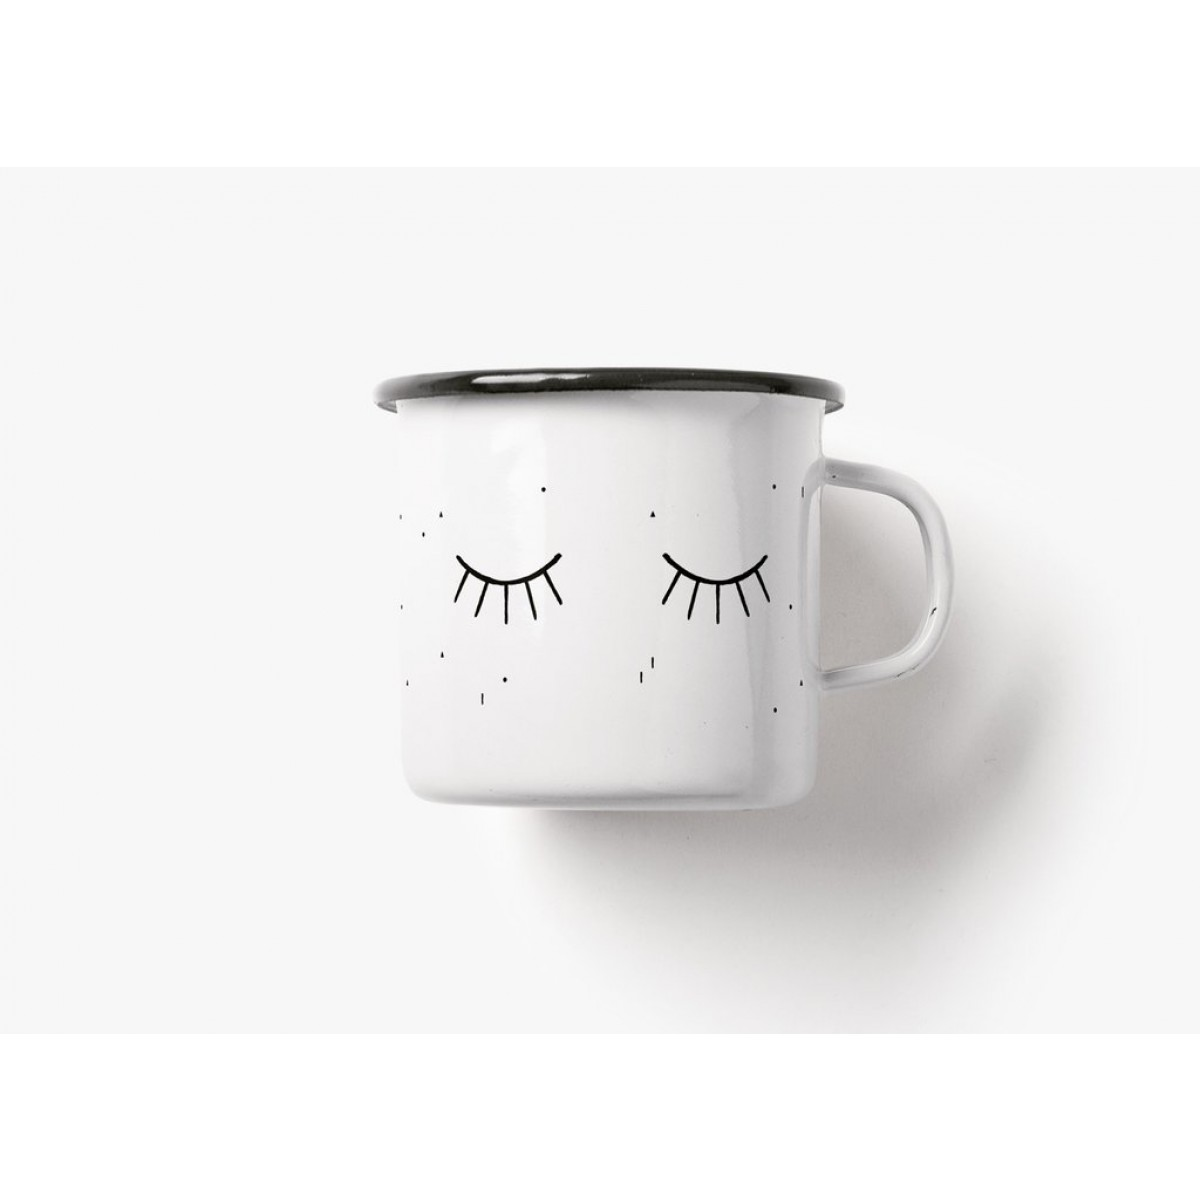 typealive / Emaillebecher Tasse / Smunday